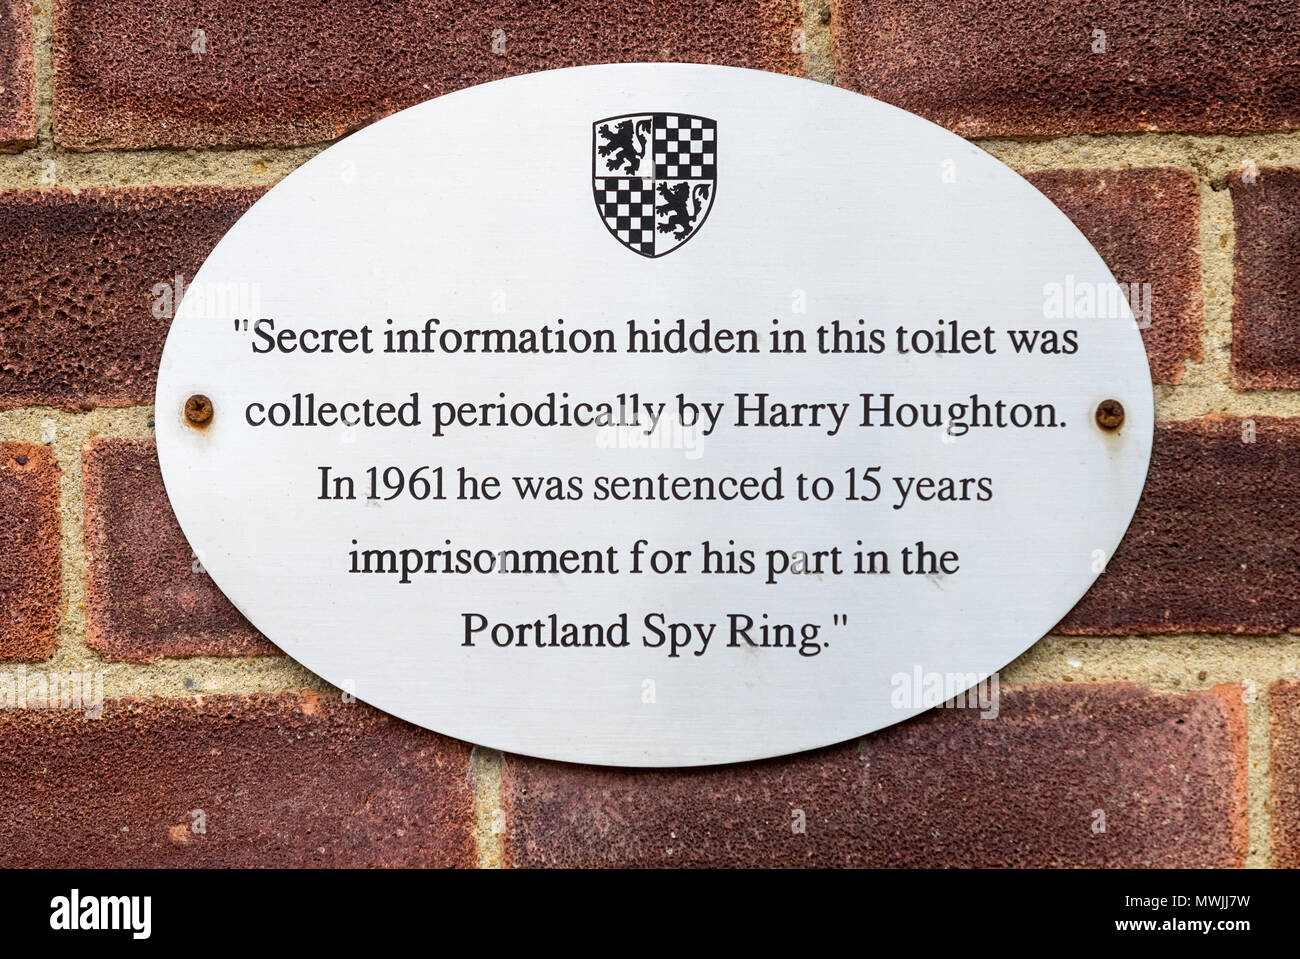 Public toilet in Alresford Hampshire where secret information was collect by Harry Houghton in 1961 as part of the Portland Spy Ring - Stock Image